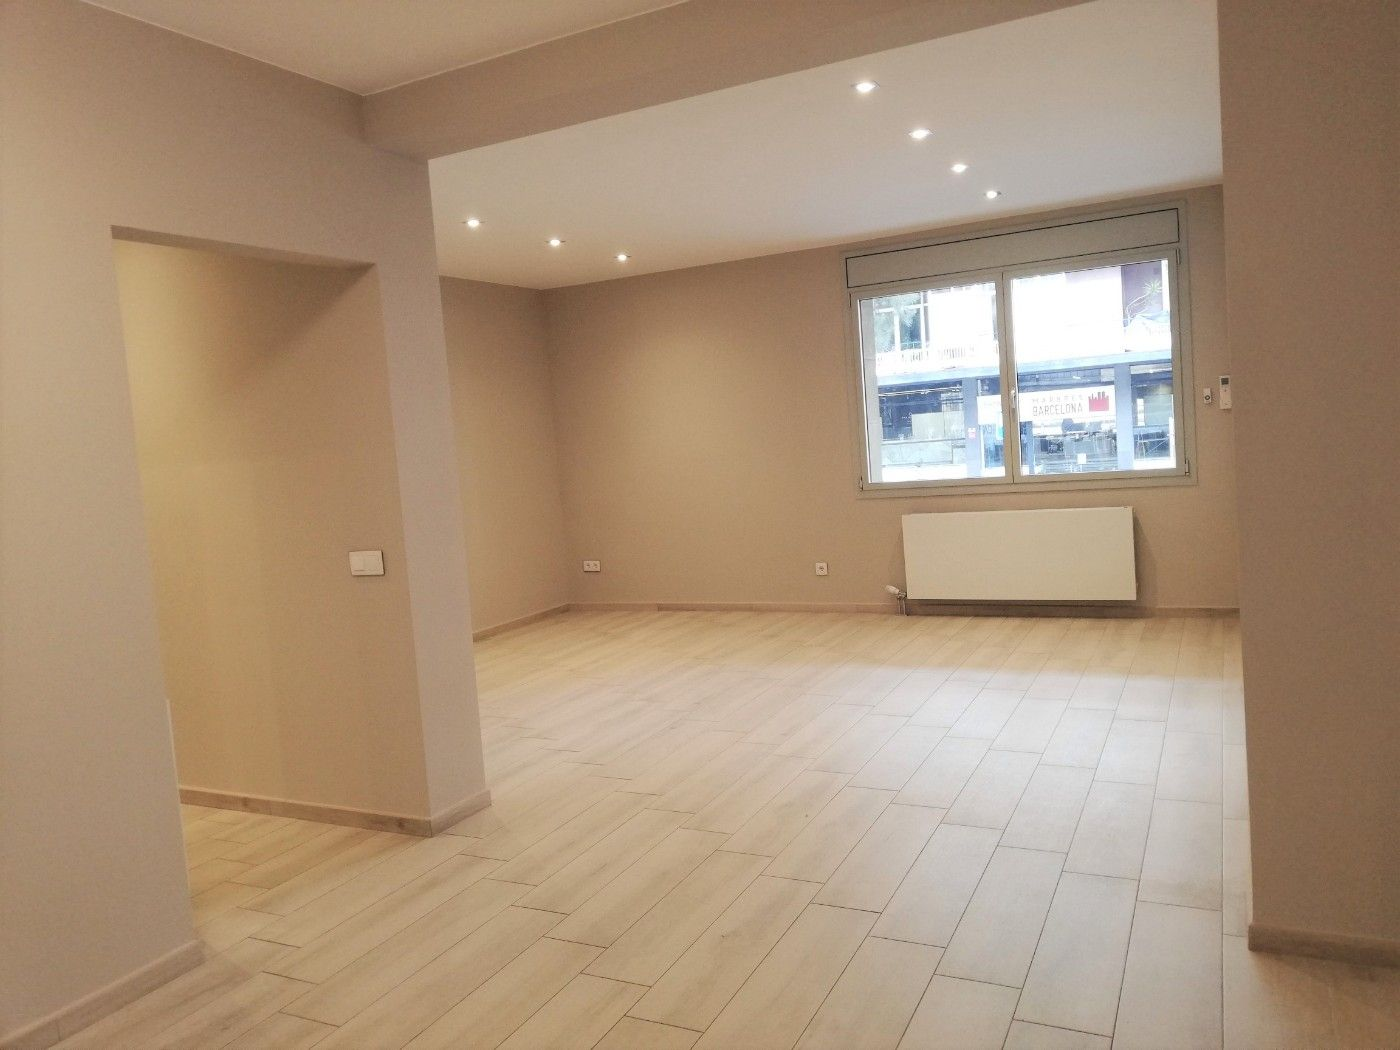 Location Appartement  Via augusta. Piso en barrio galvany de 4 hab